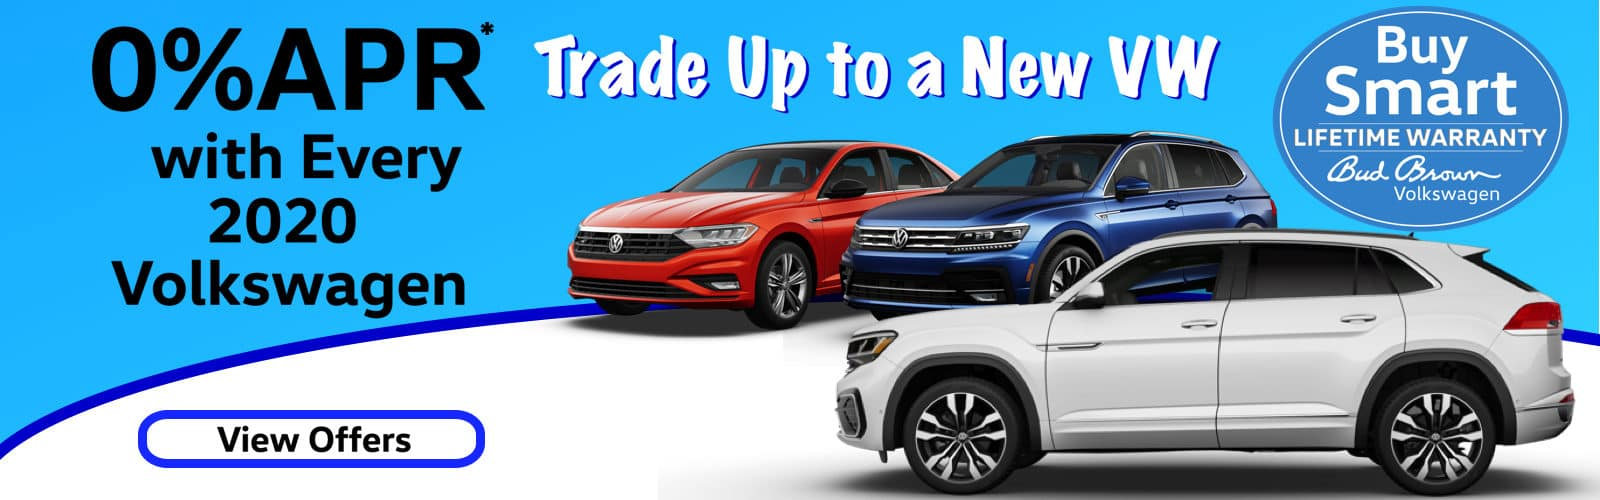 0% APR plus Bud Brown Lifetime Warranty on every new 2020 Volkswagen.